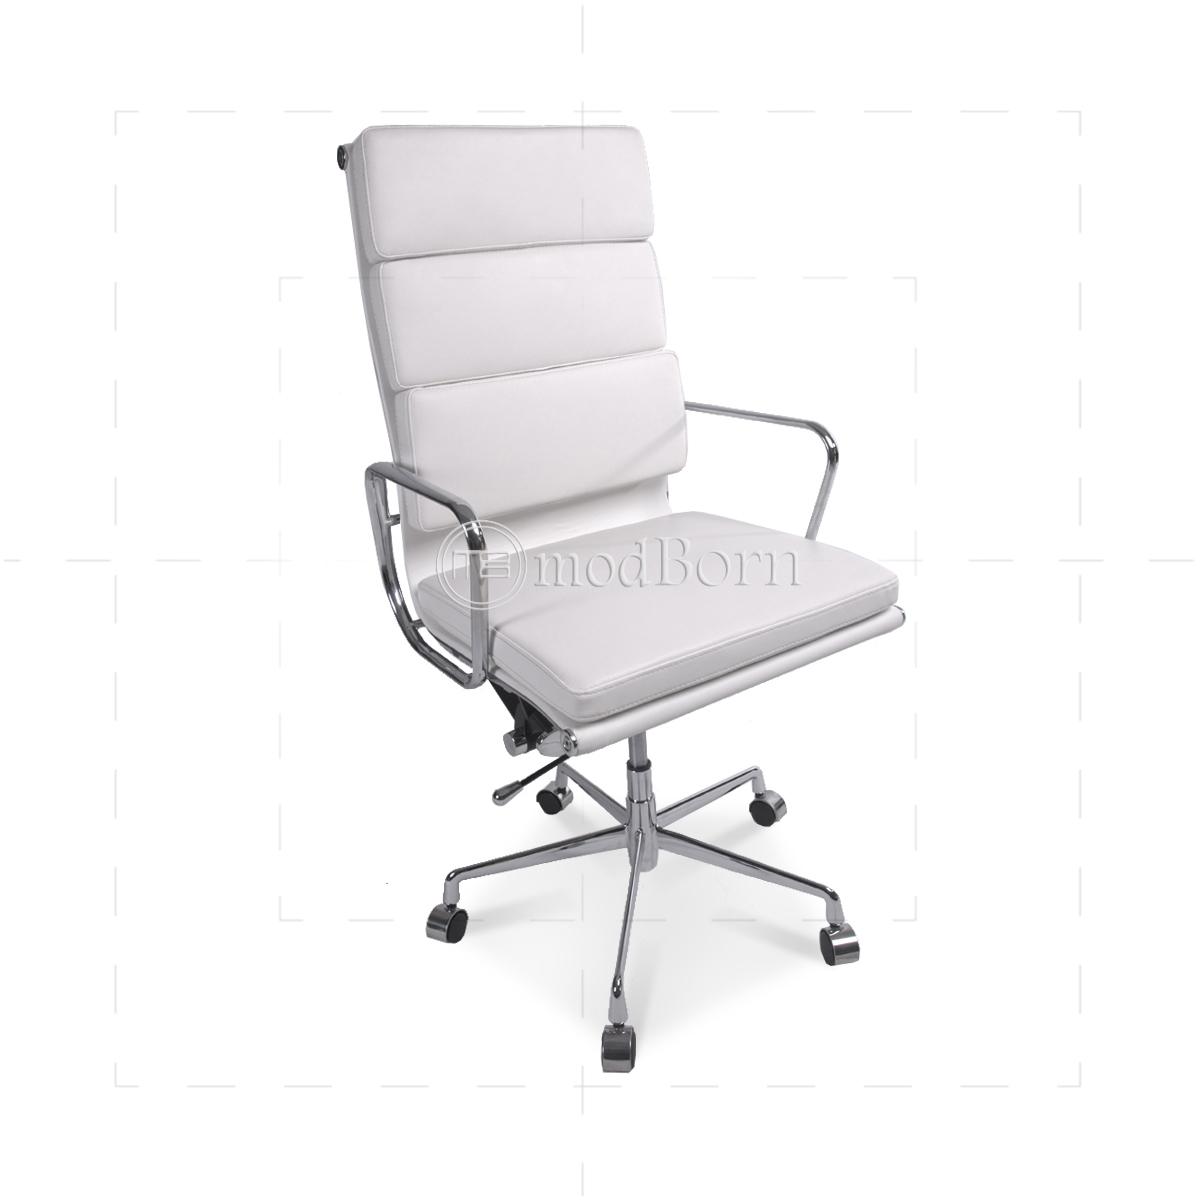 https://images.modborn.co.uk/image/cache/data/products/ceoc-hb-s-white/eames-office-highback-white-side-1200x1200.jpg